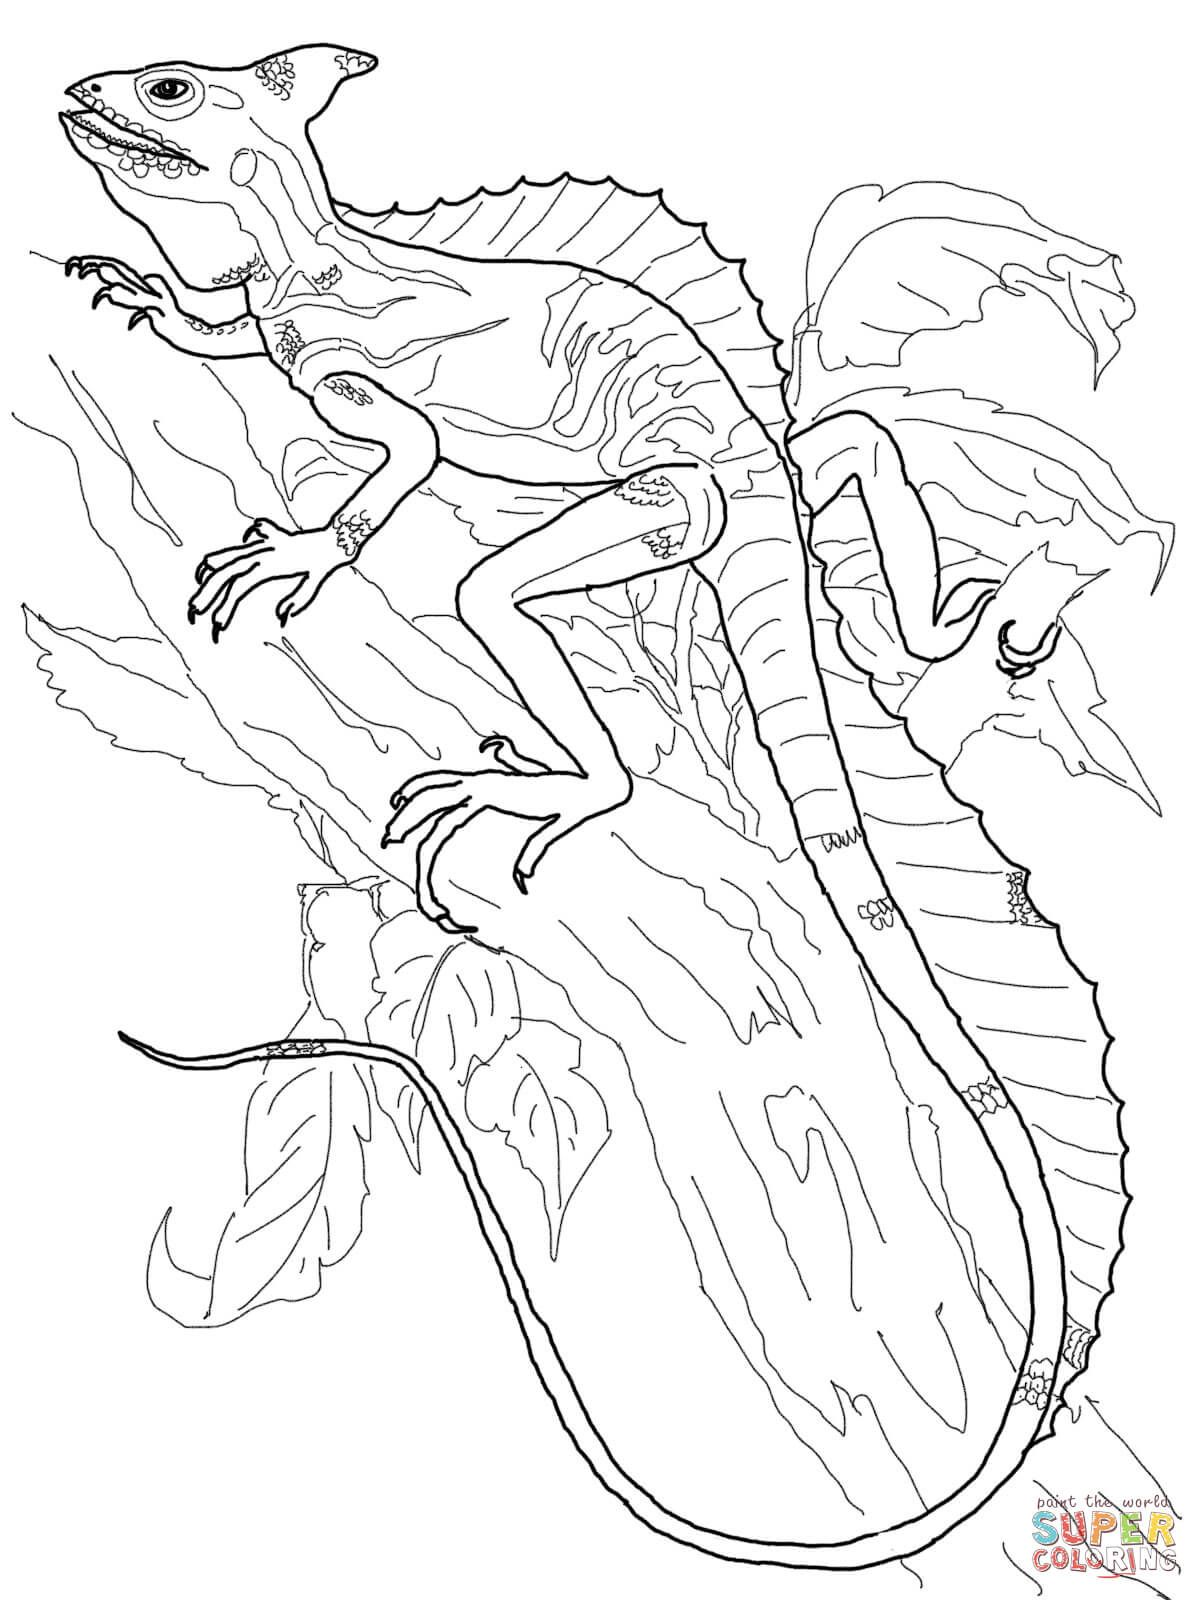 Basilisk Lizard Coloring Page Free Printable Coloring Pages Coloring Pages Animal Coloring Pages Dragon Coloring Page